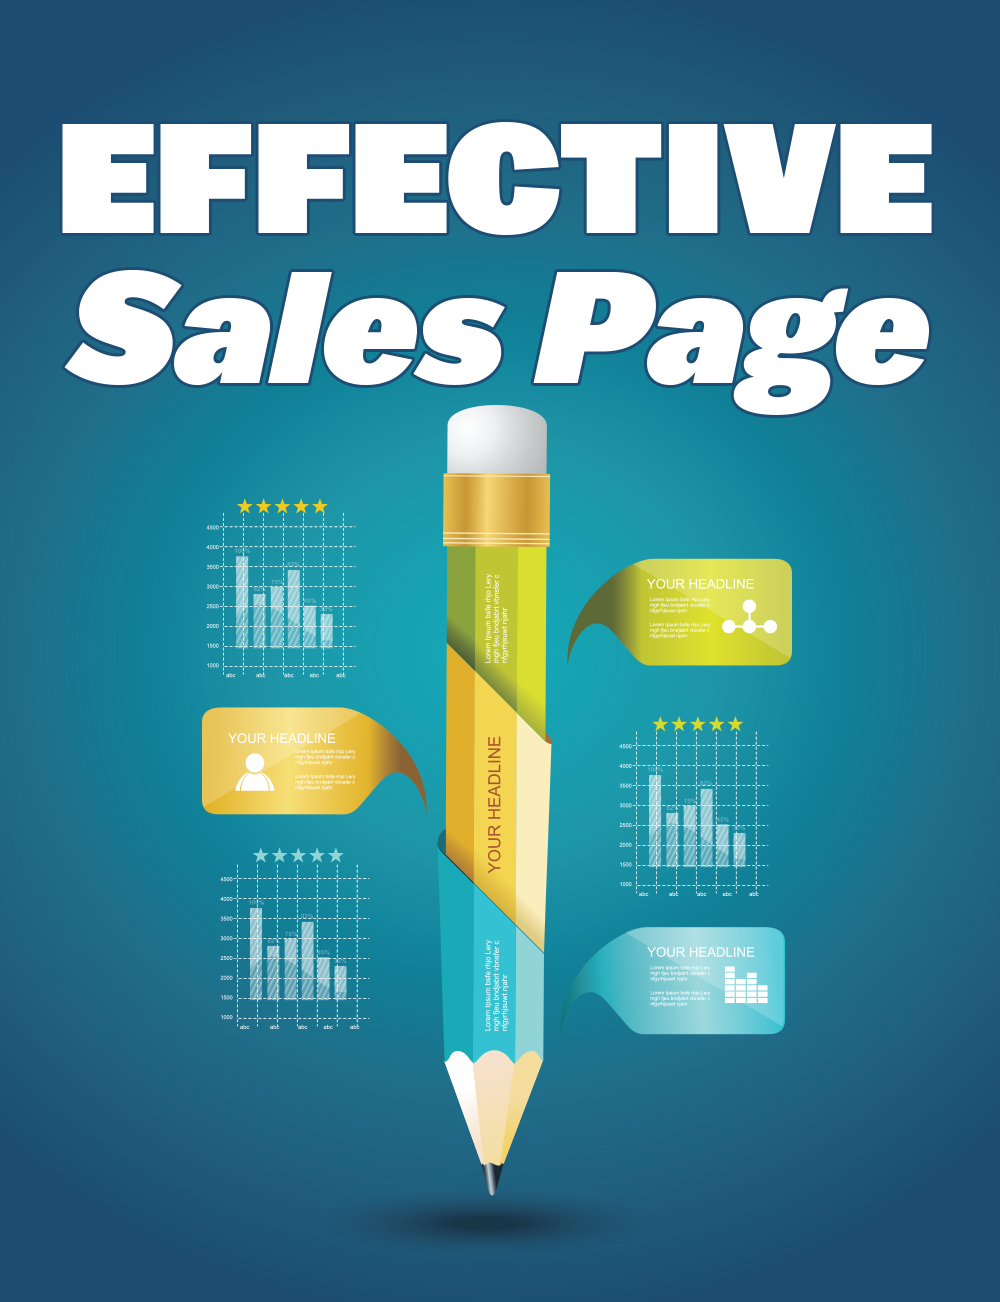 Effective Sales Page - Payhip